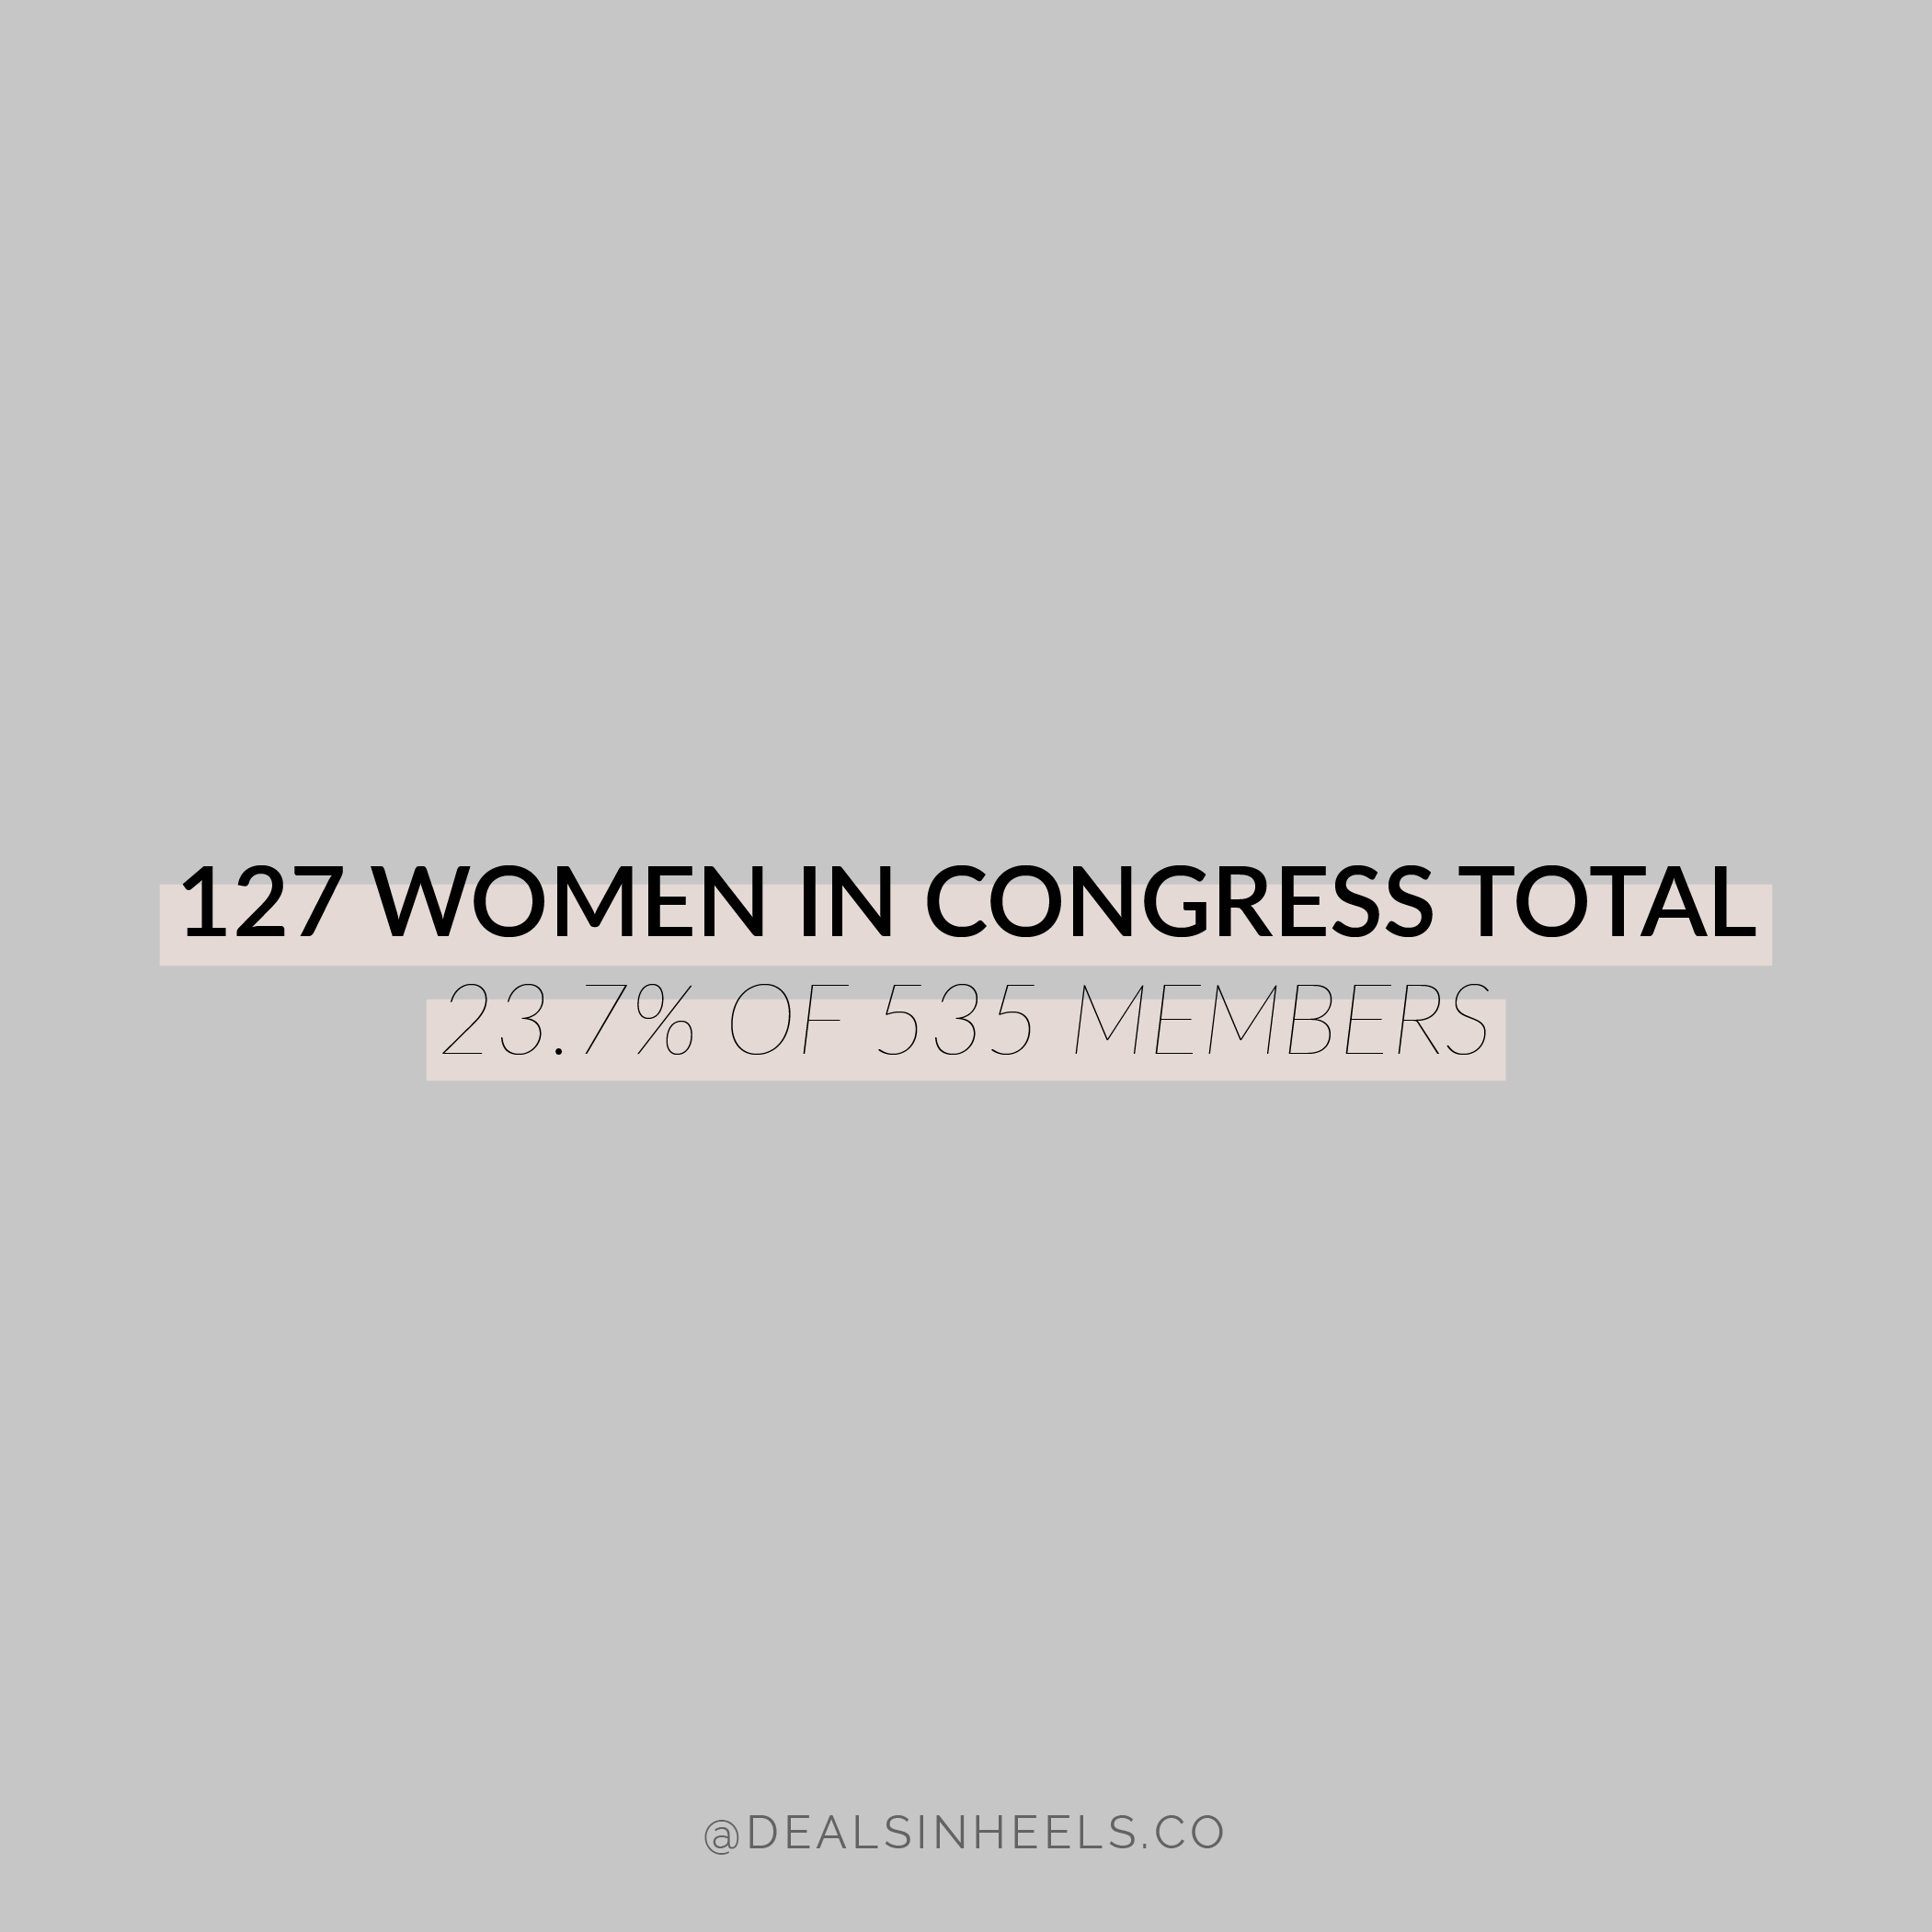 DEALS IN HEELS - WOMEN IN CONGRESS.jpg